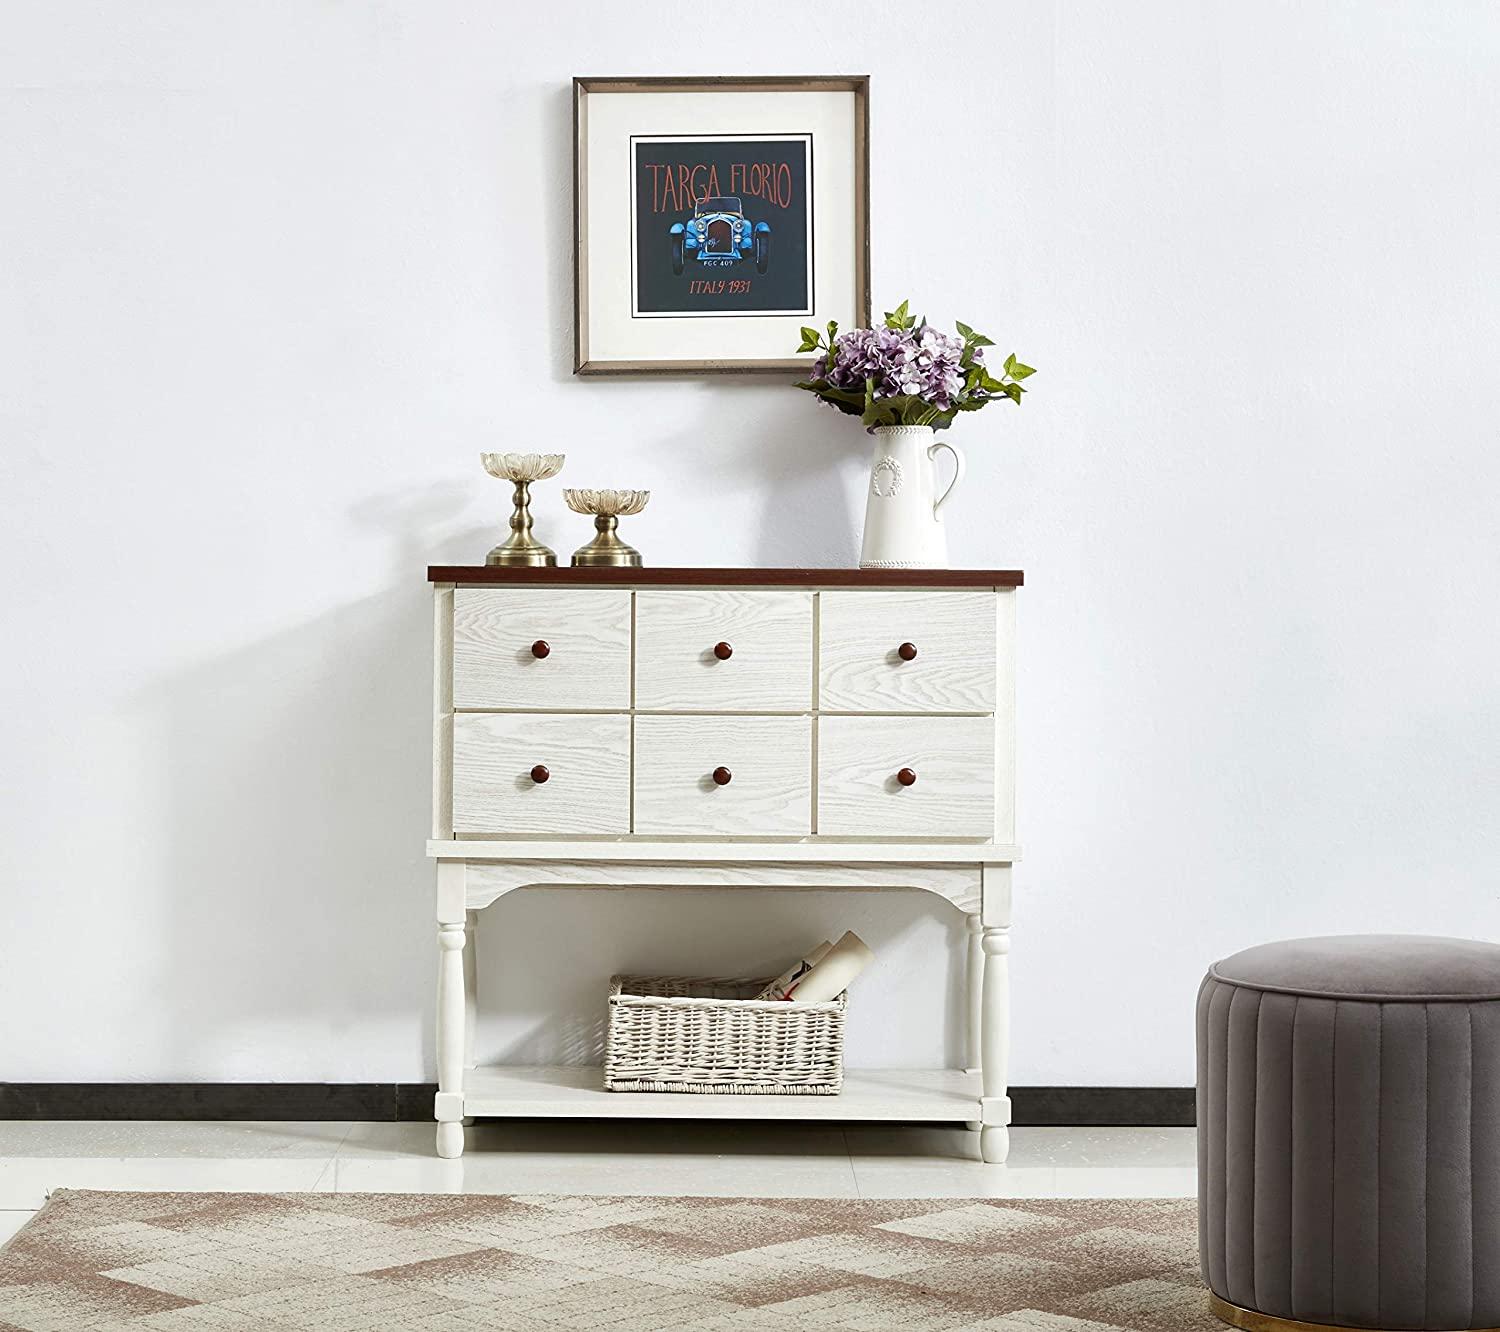 Mixcept Solid Wood Sideboard Buffet Server Cabinet Kitchen Dining Room Cupboard Console Table with 6 Drawers,Walnut +White Wash